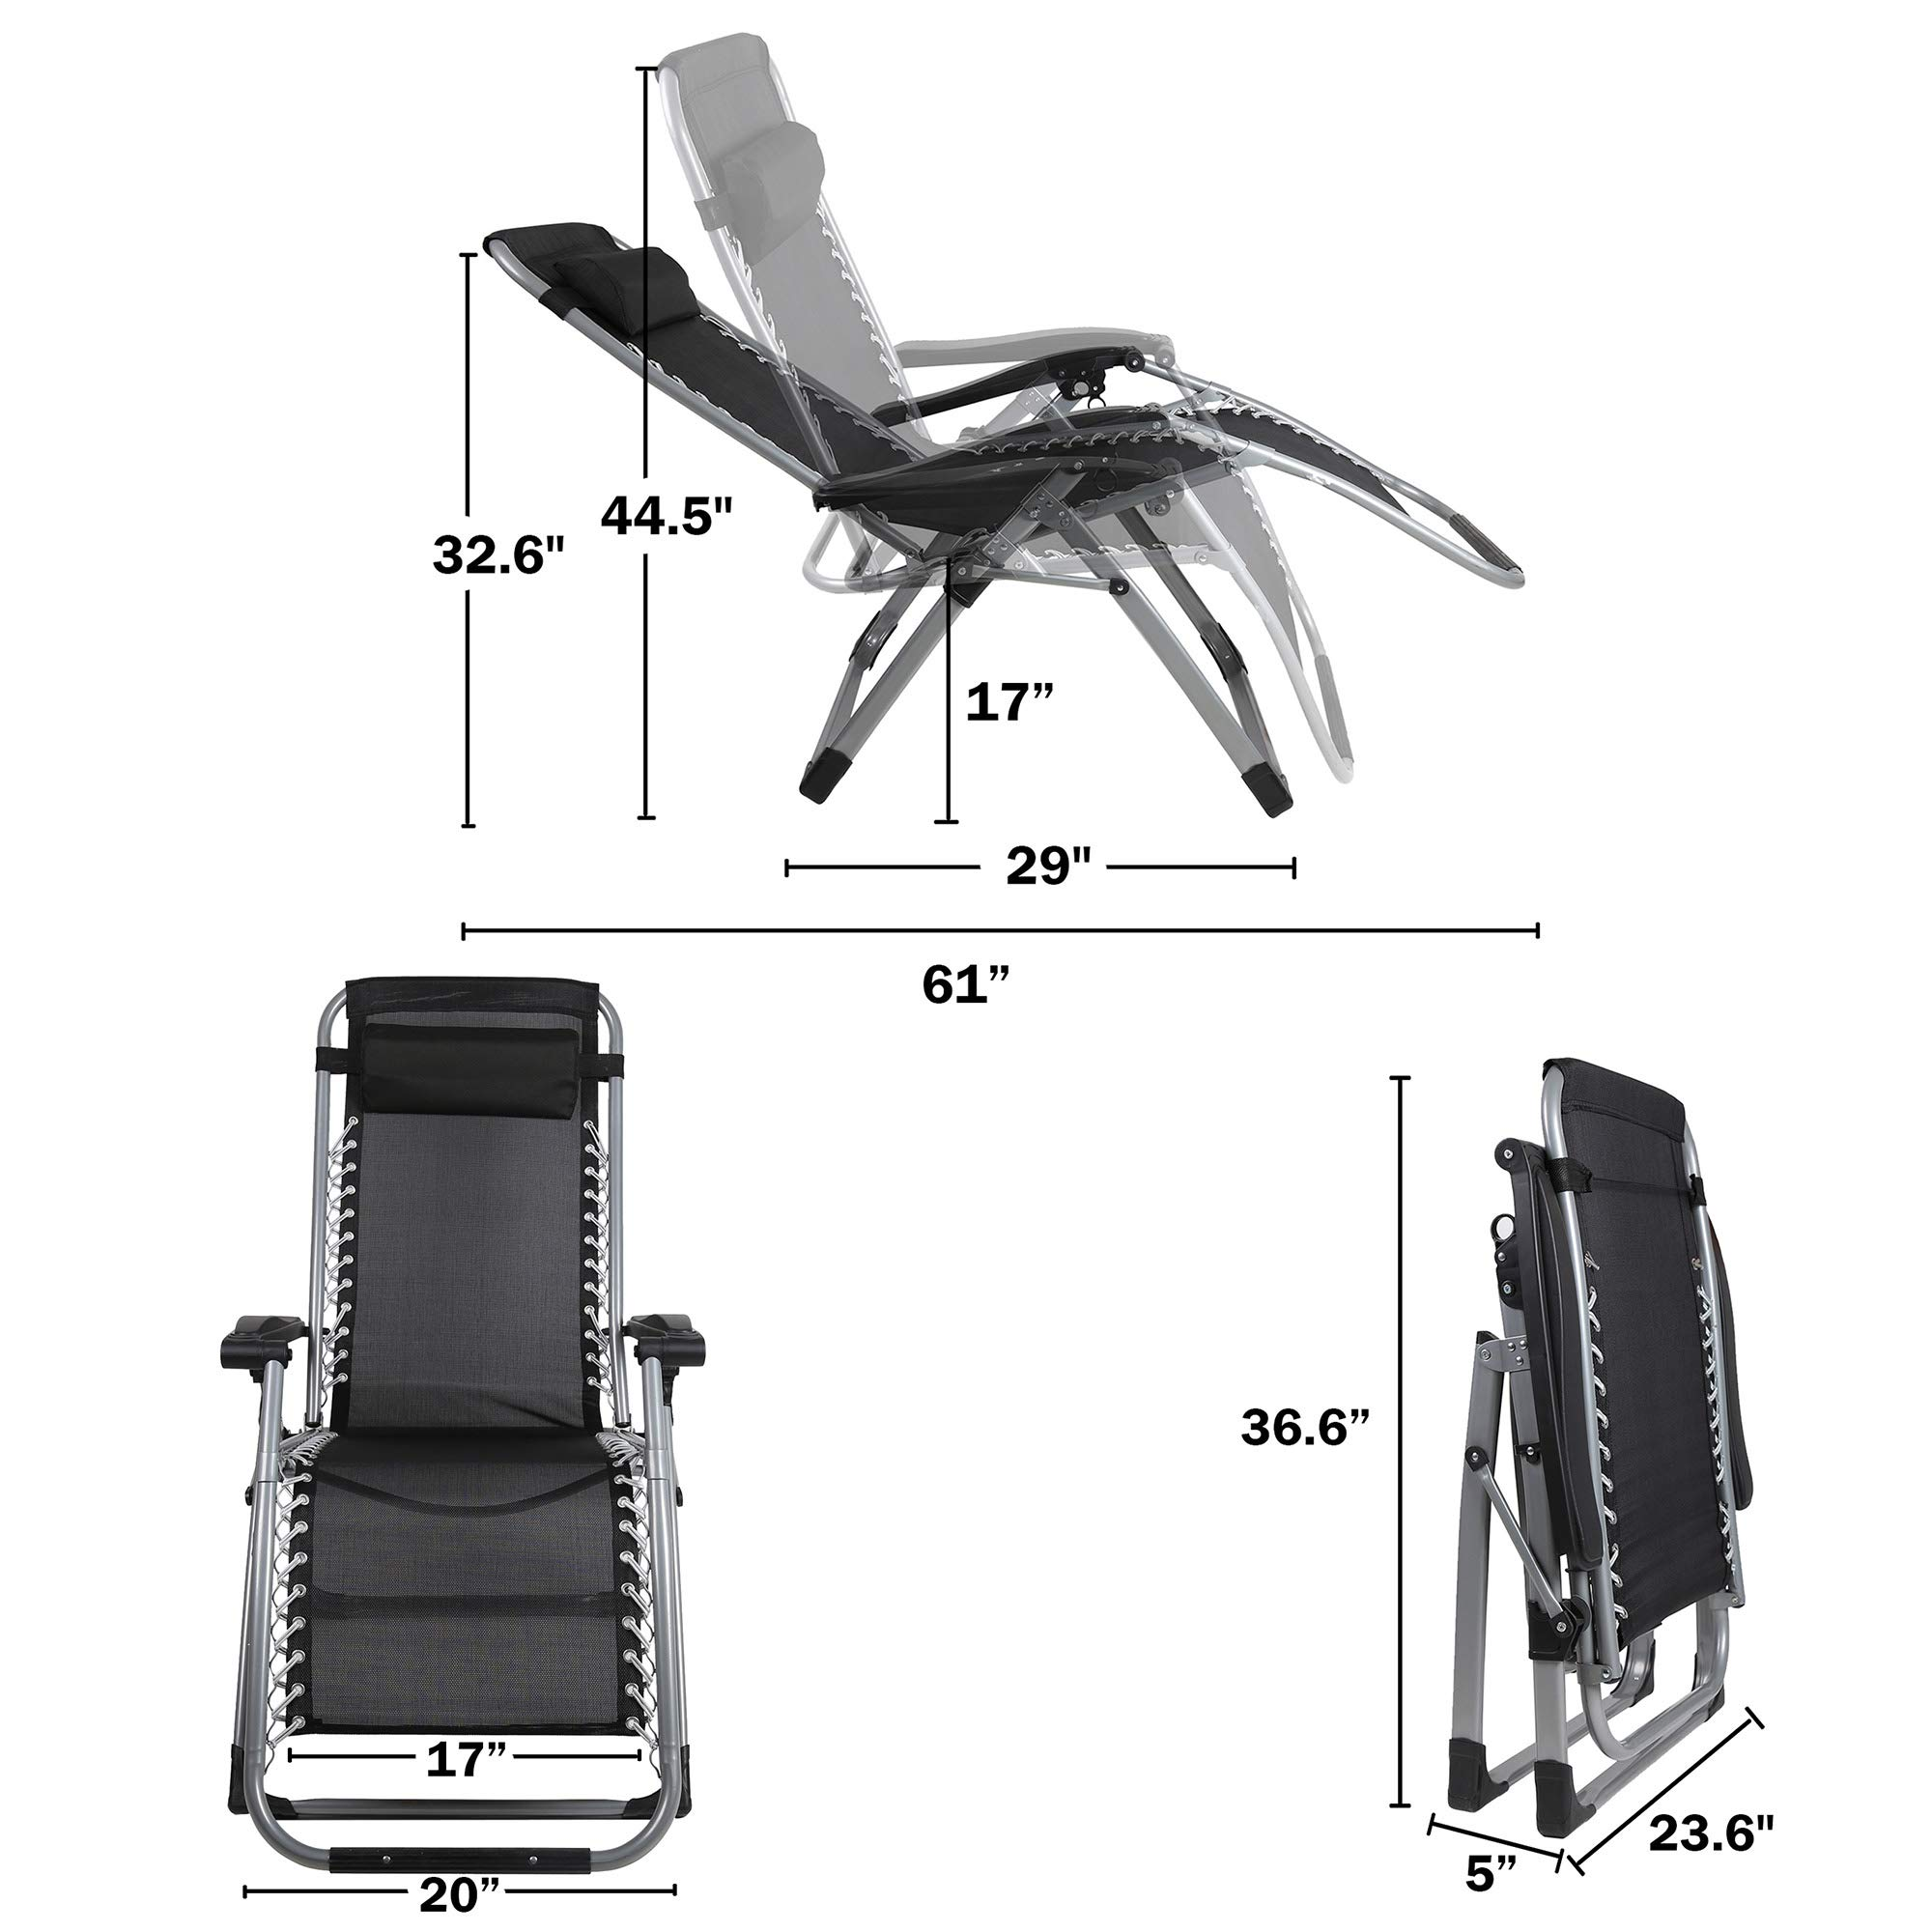 Adjustable Reclining Lawn Lounge Chairs for Patio 330 Lbs Capacity Beach and Pool LUCKYERMORE Folding Zero Gravity Chair 2 Pack- Heavy Duty Steel Frame and Breathable Fabric